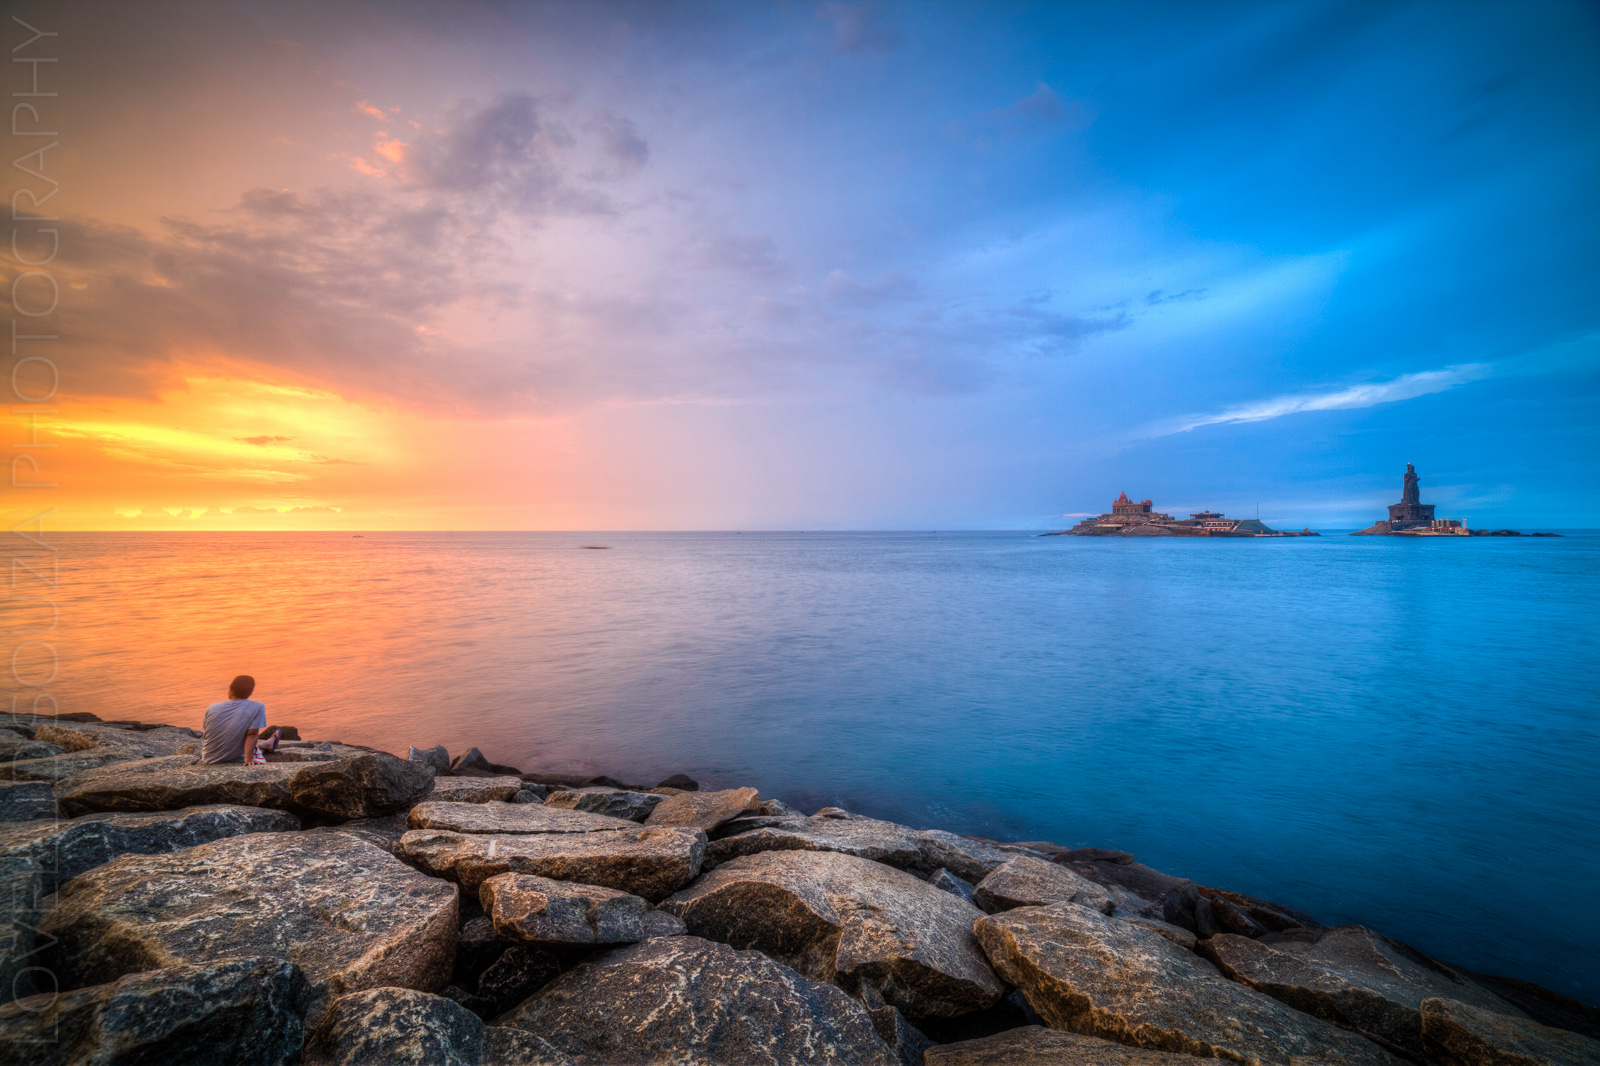 Drama & Dawn — Kanyakumari Sunrise